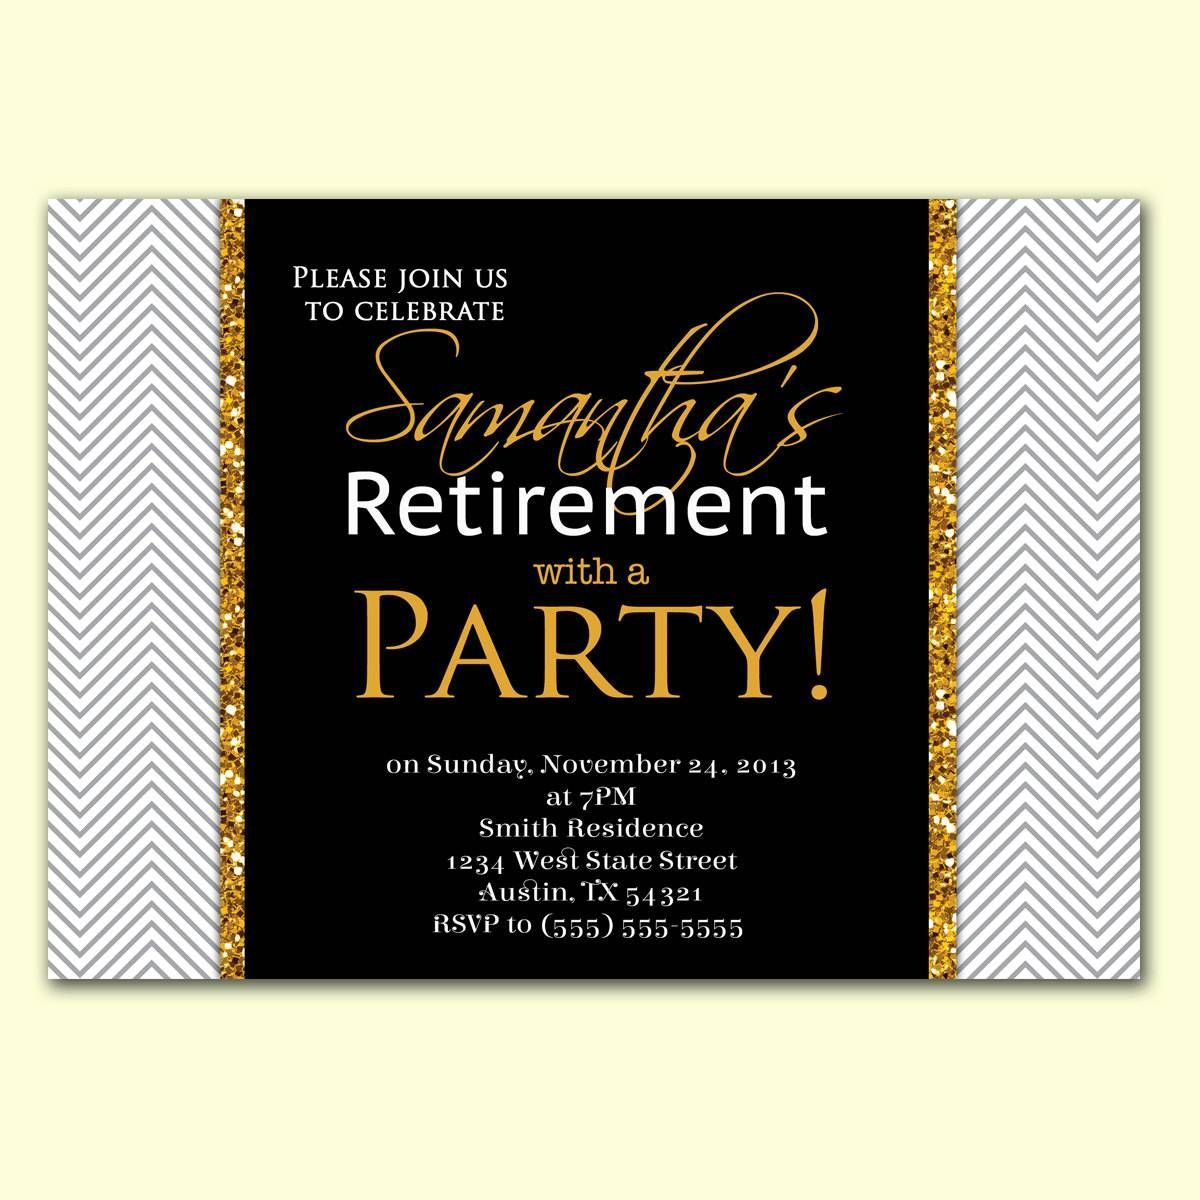 002 Wonderful Free Retirement Reception Invitation Template Concept  TemplatesFull